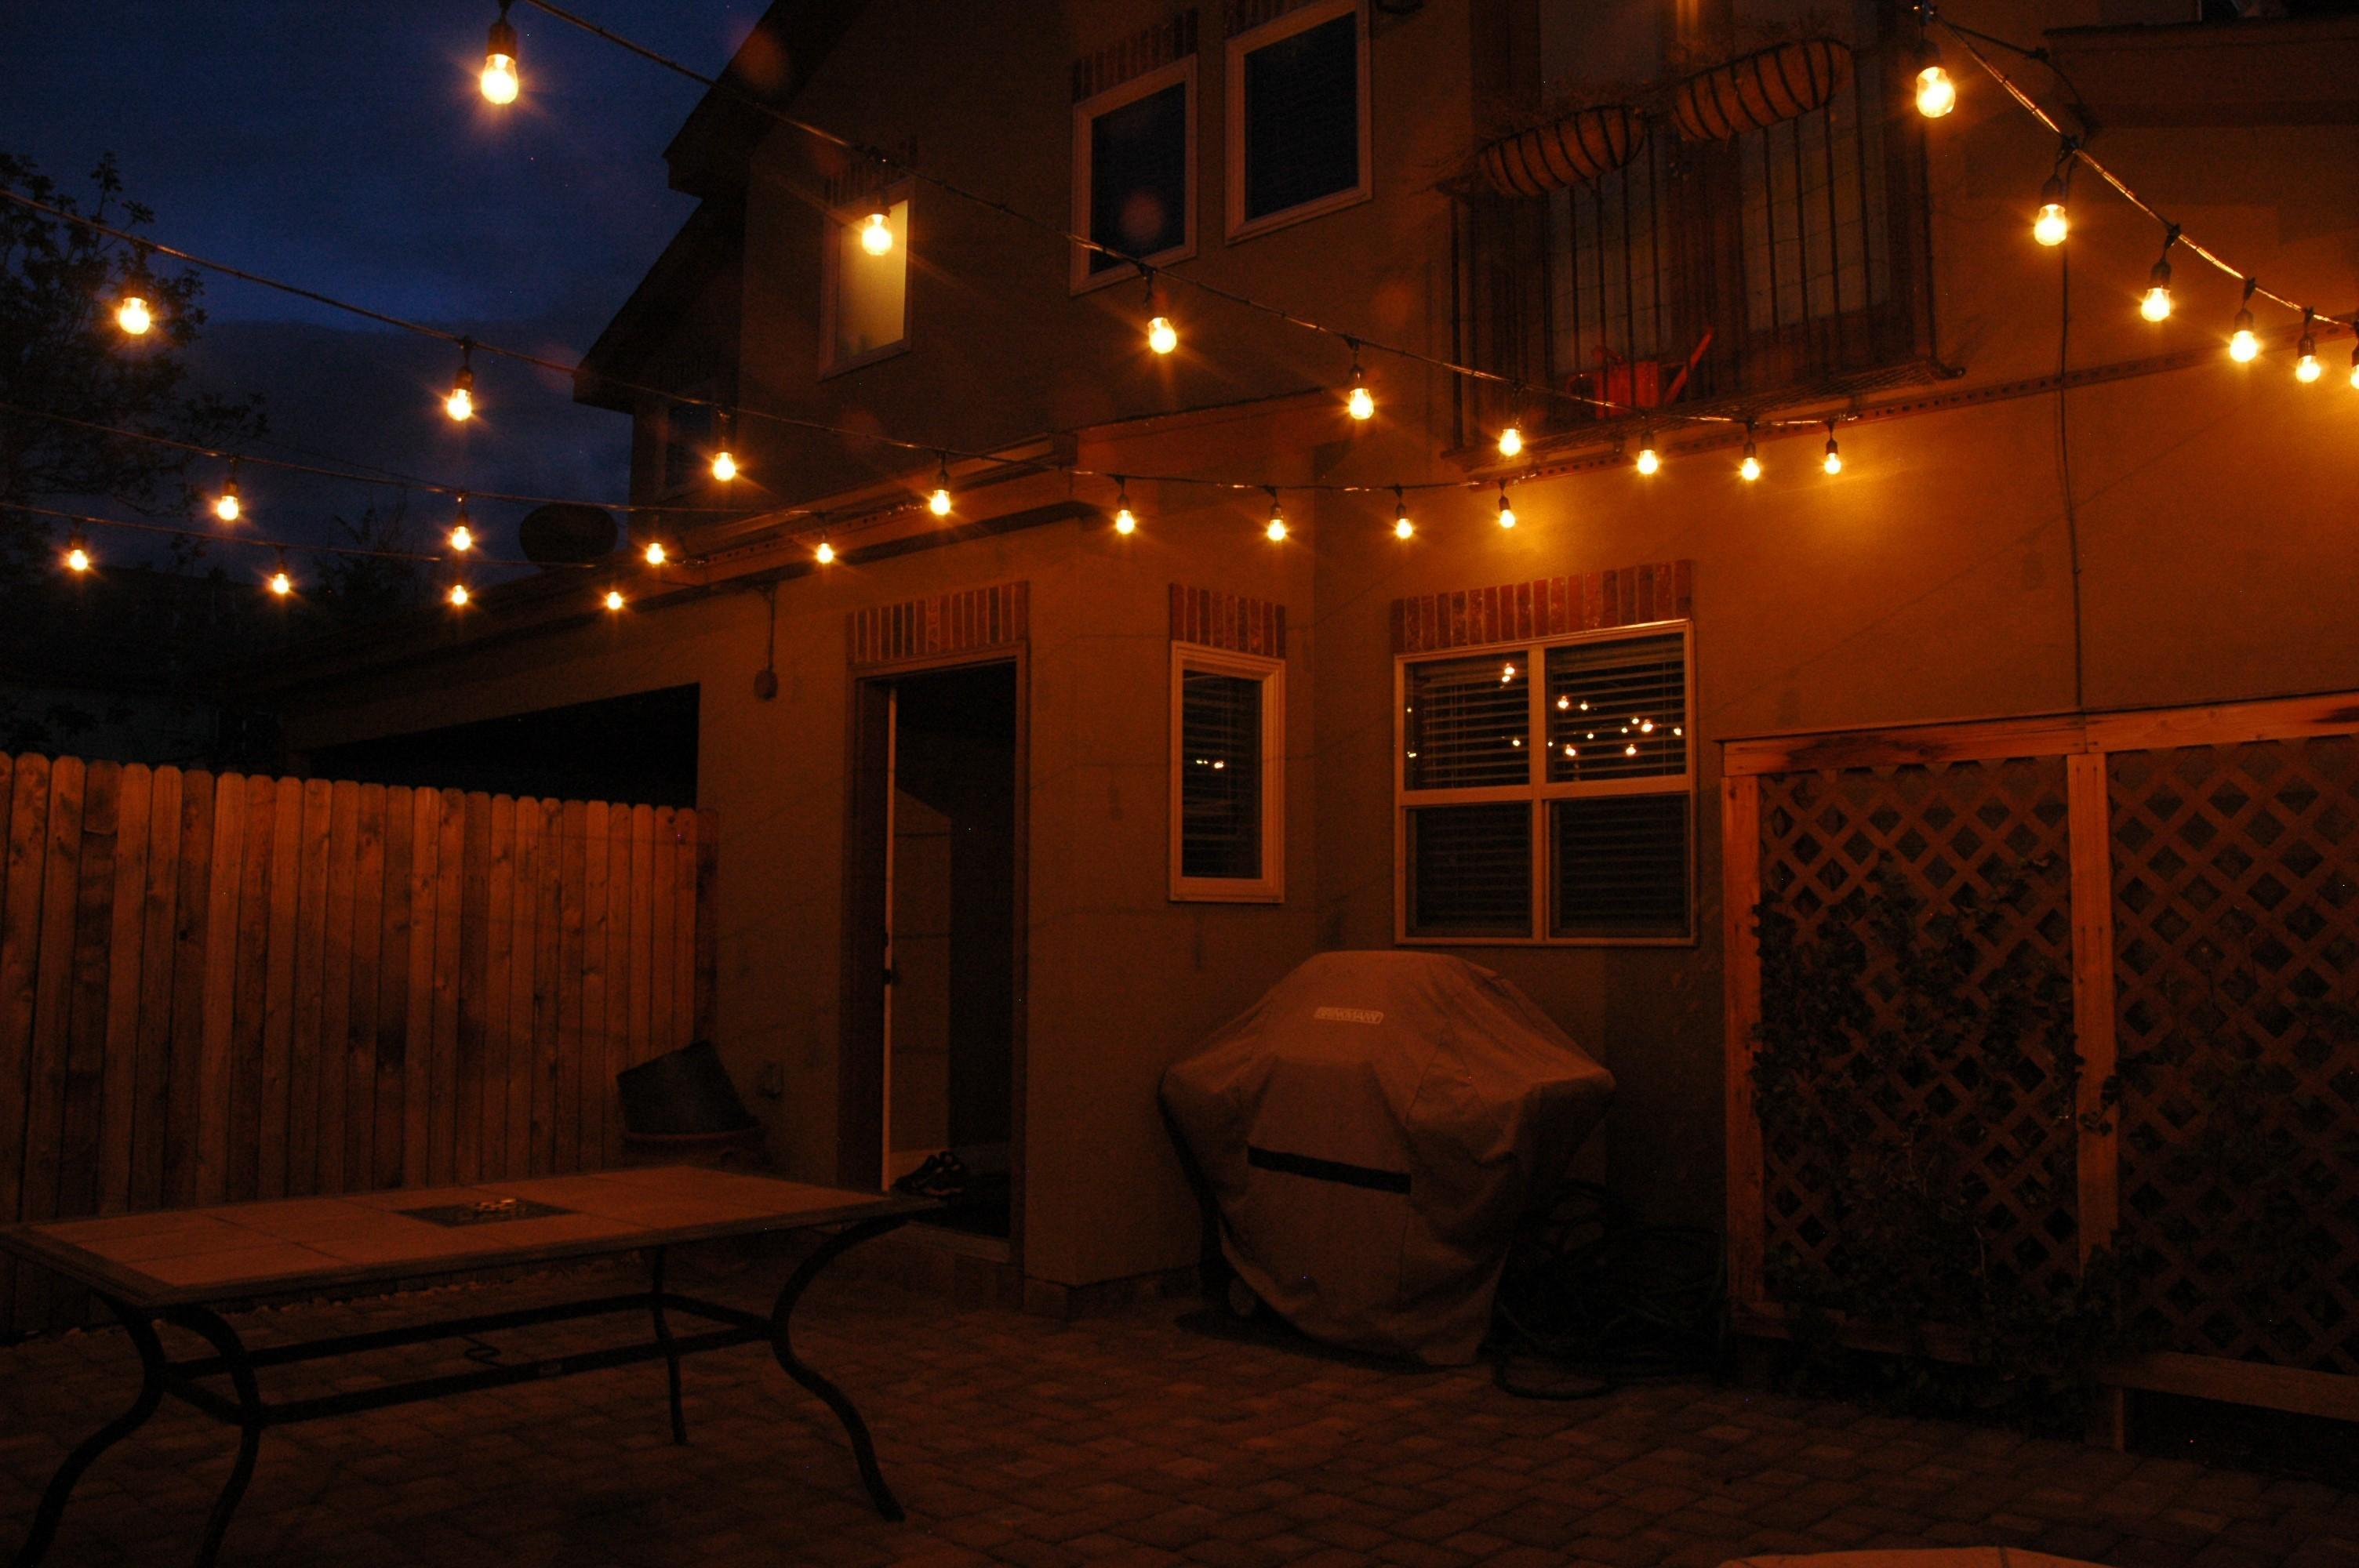 Fresh Patio Lights Home Depot Telegramforpcdesktop